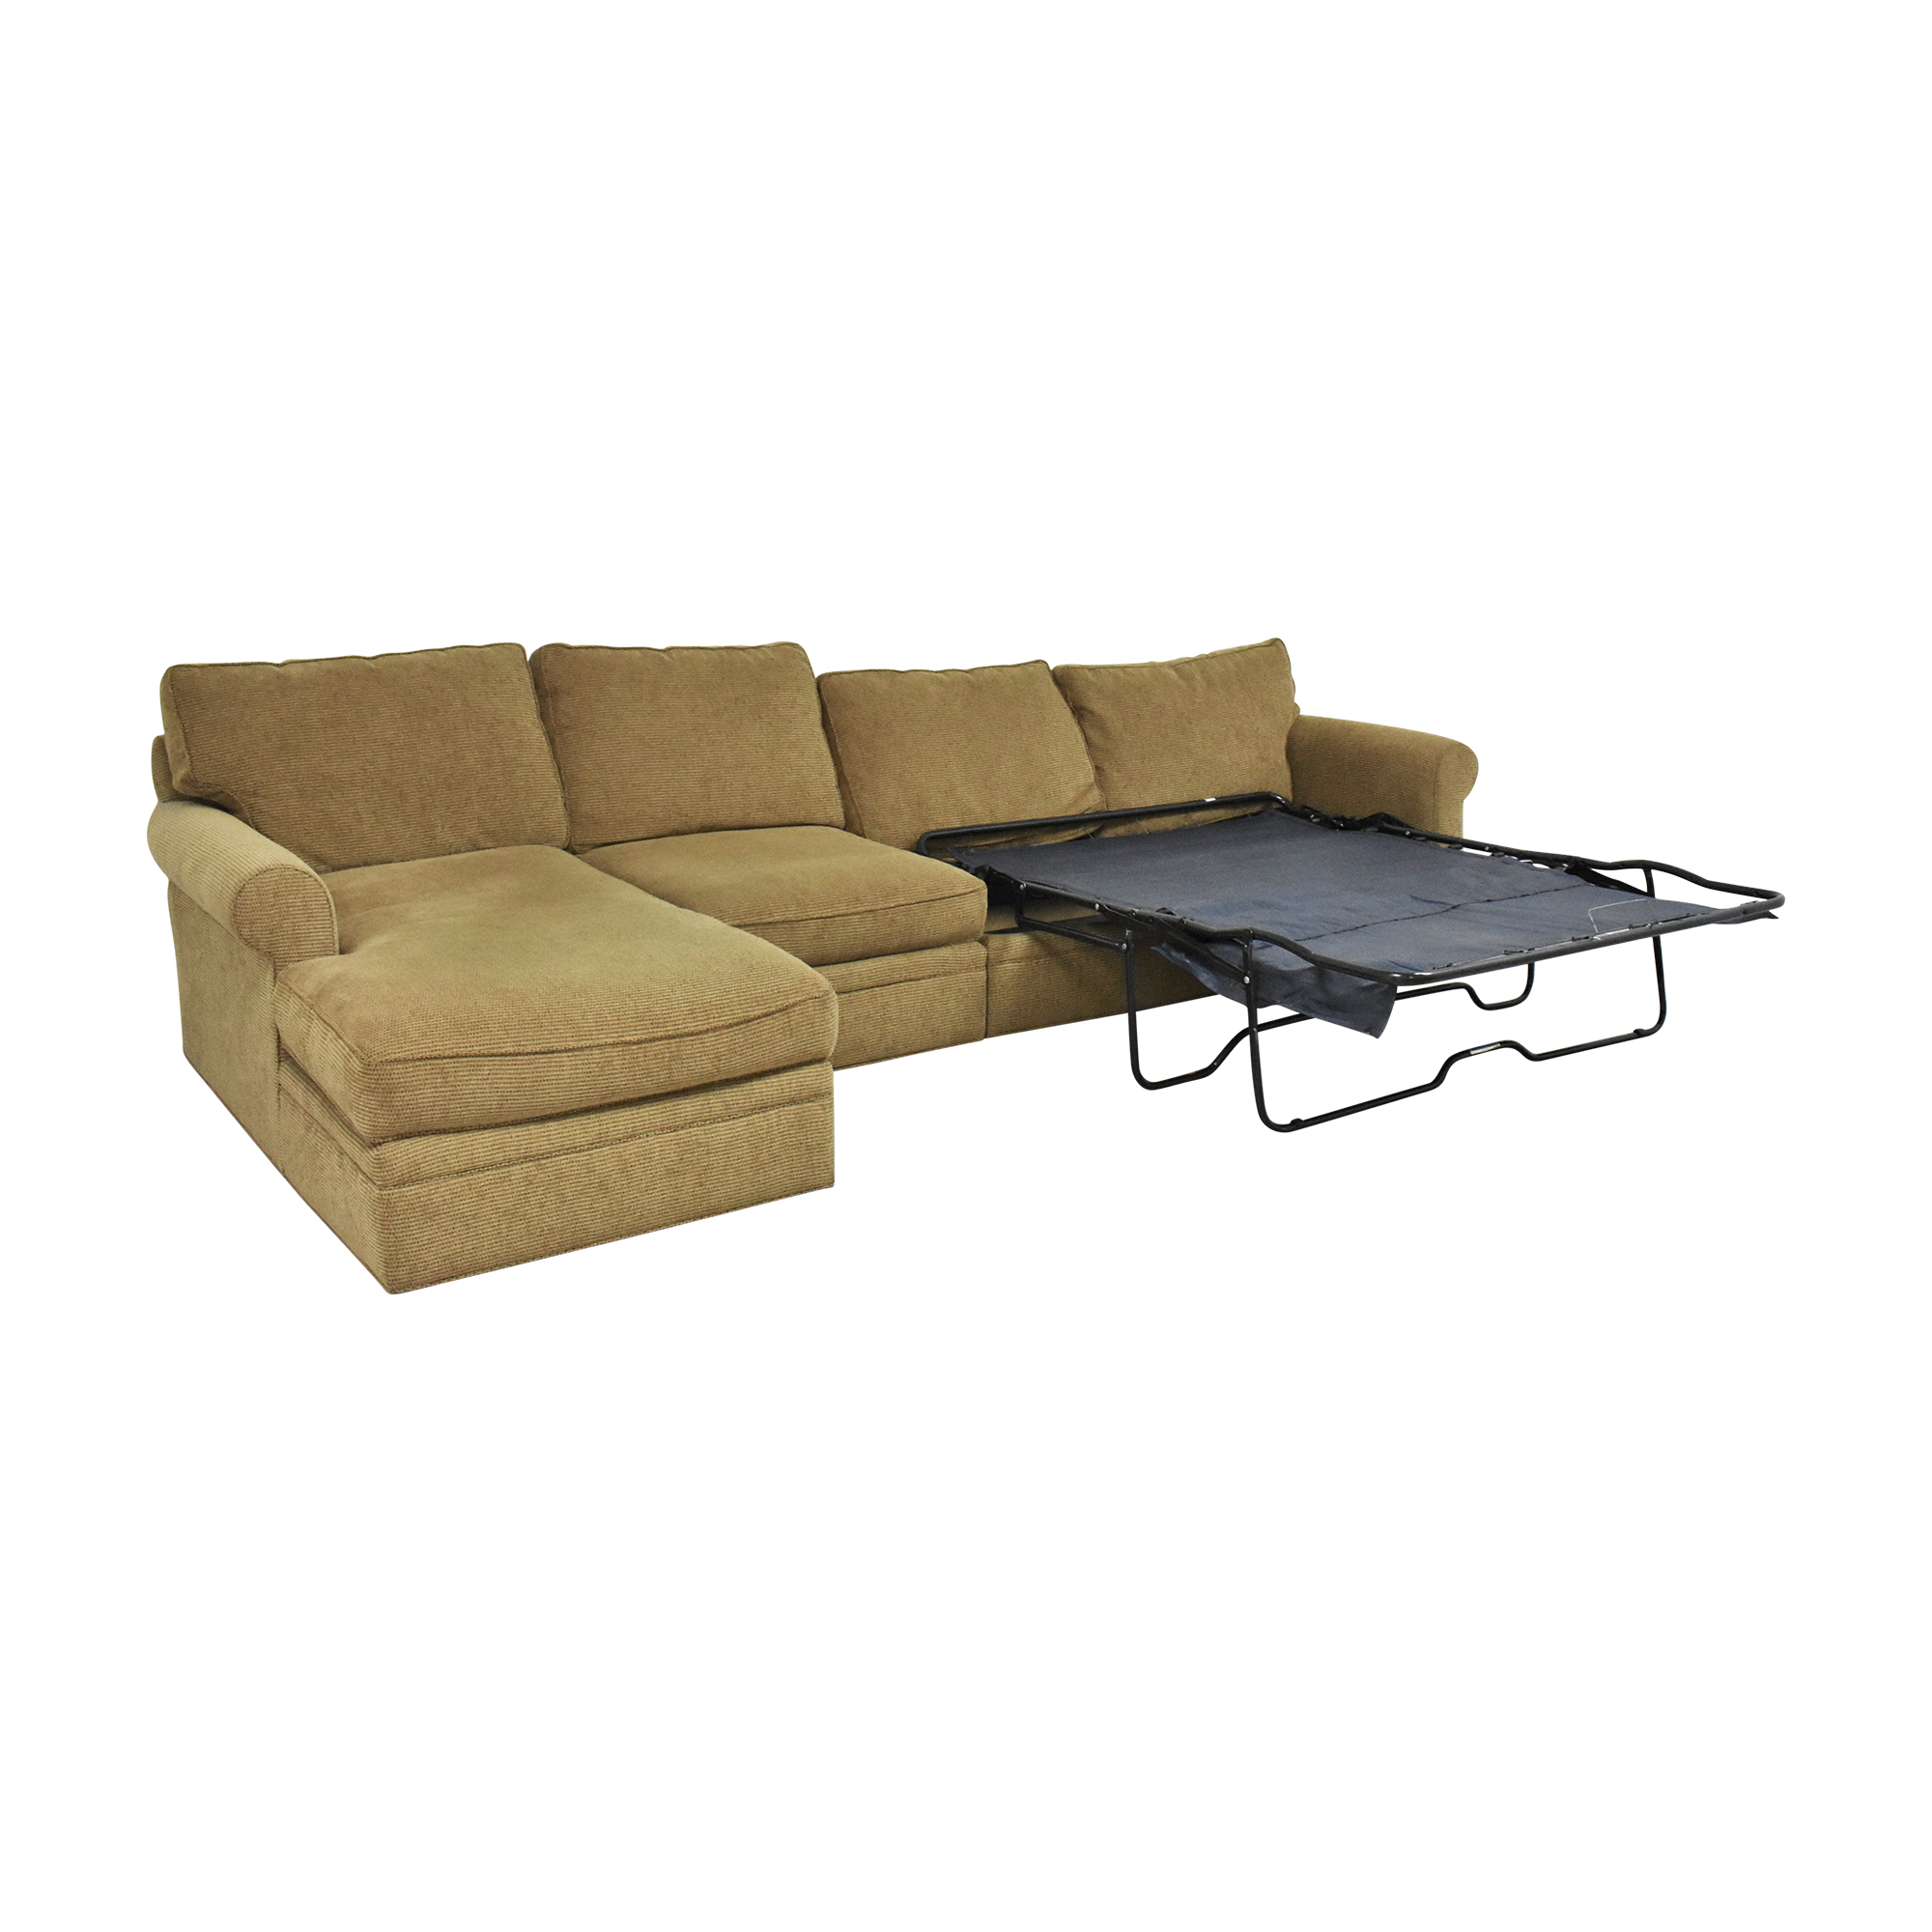 Crate & Barrel Chaise Sectional Sleeper Sofa / Sofas